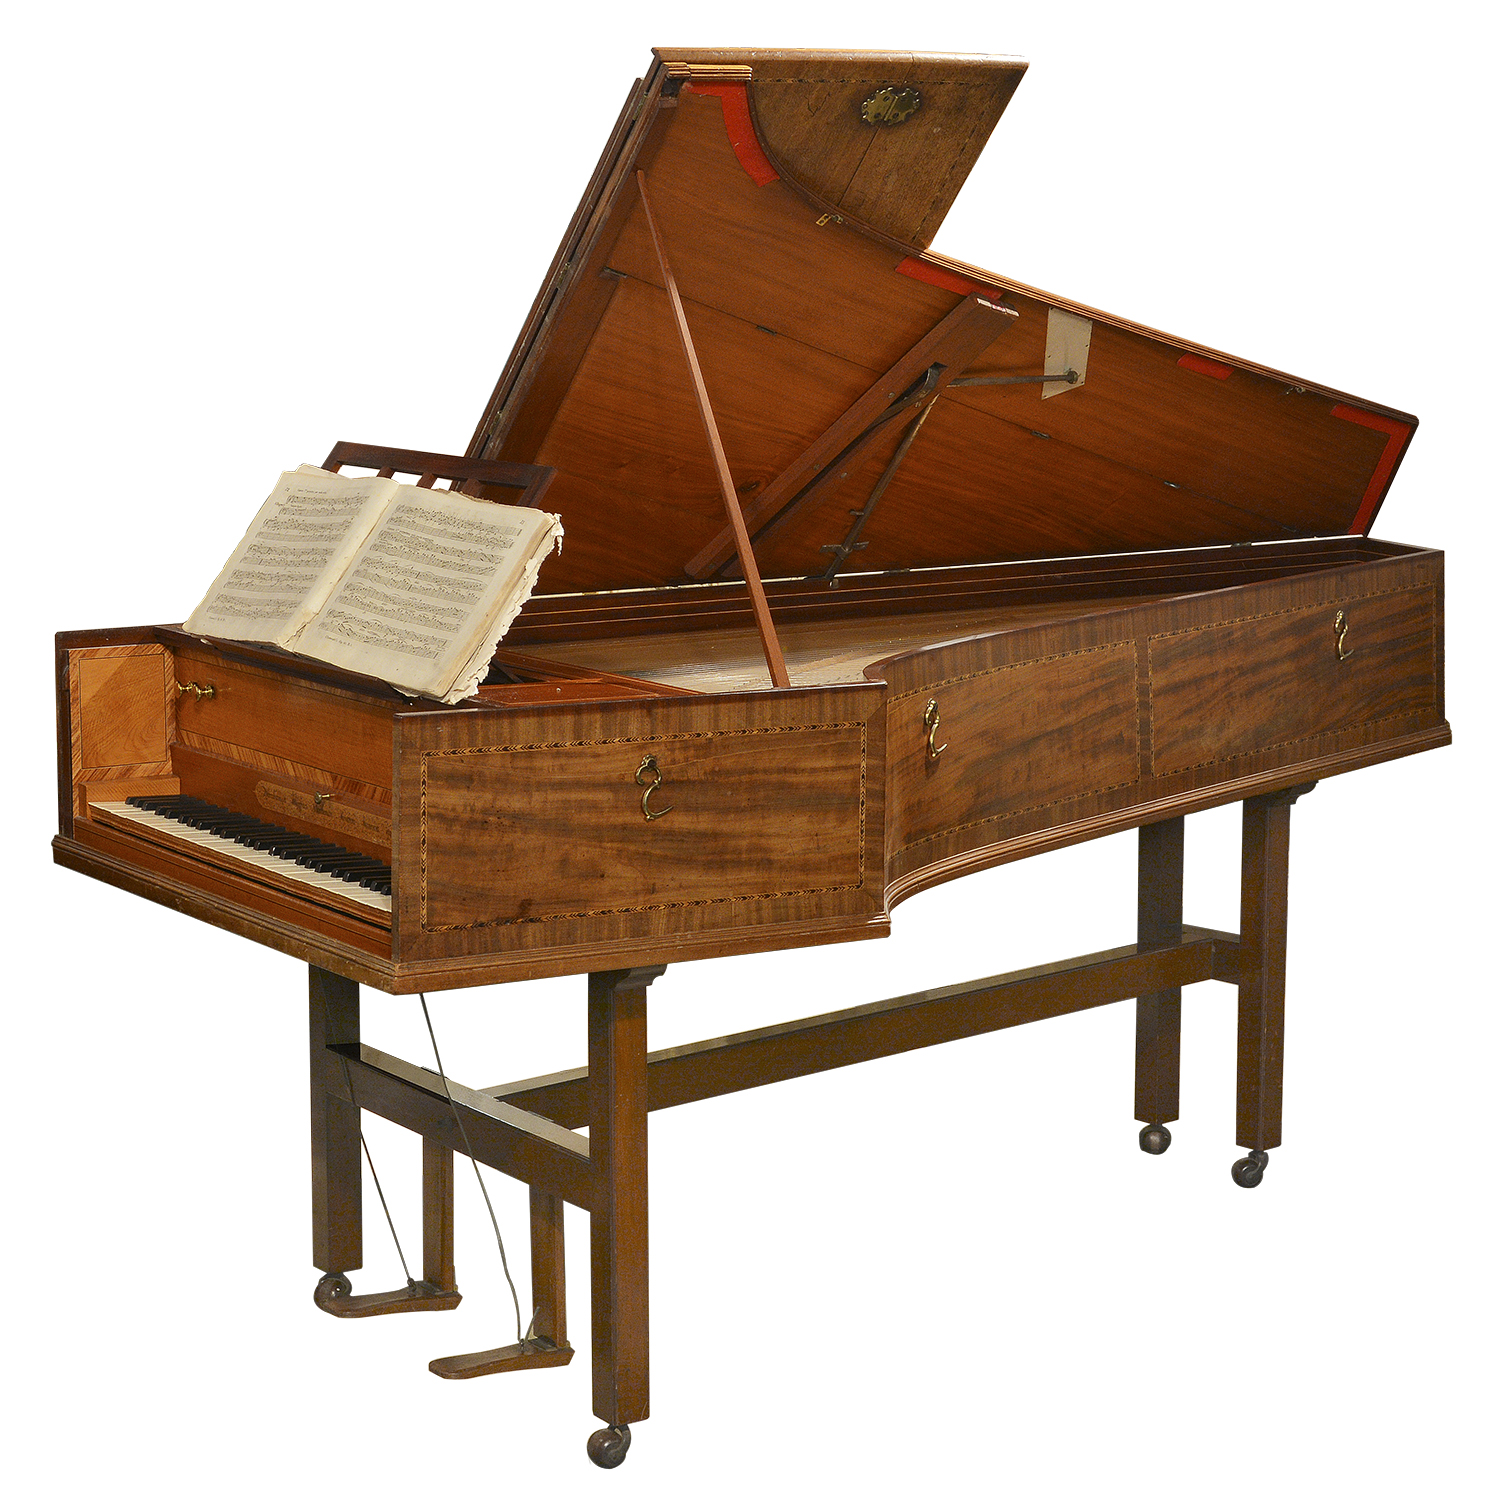 Harpsichord by Kirckman, 1792 - Period Piano Company